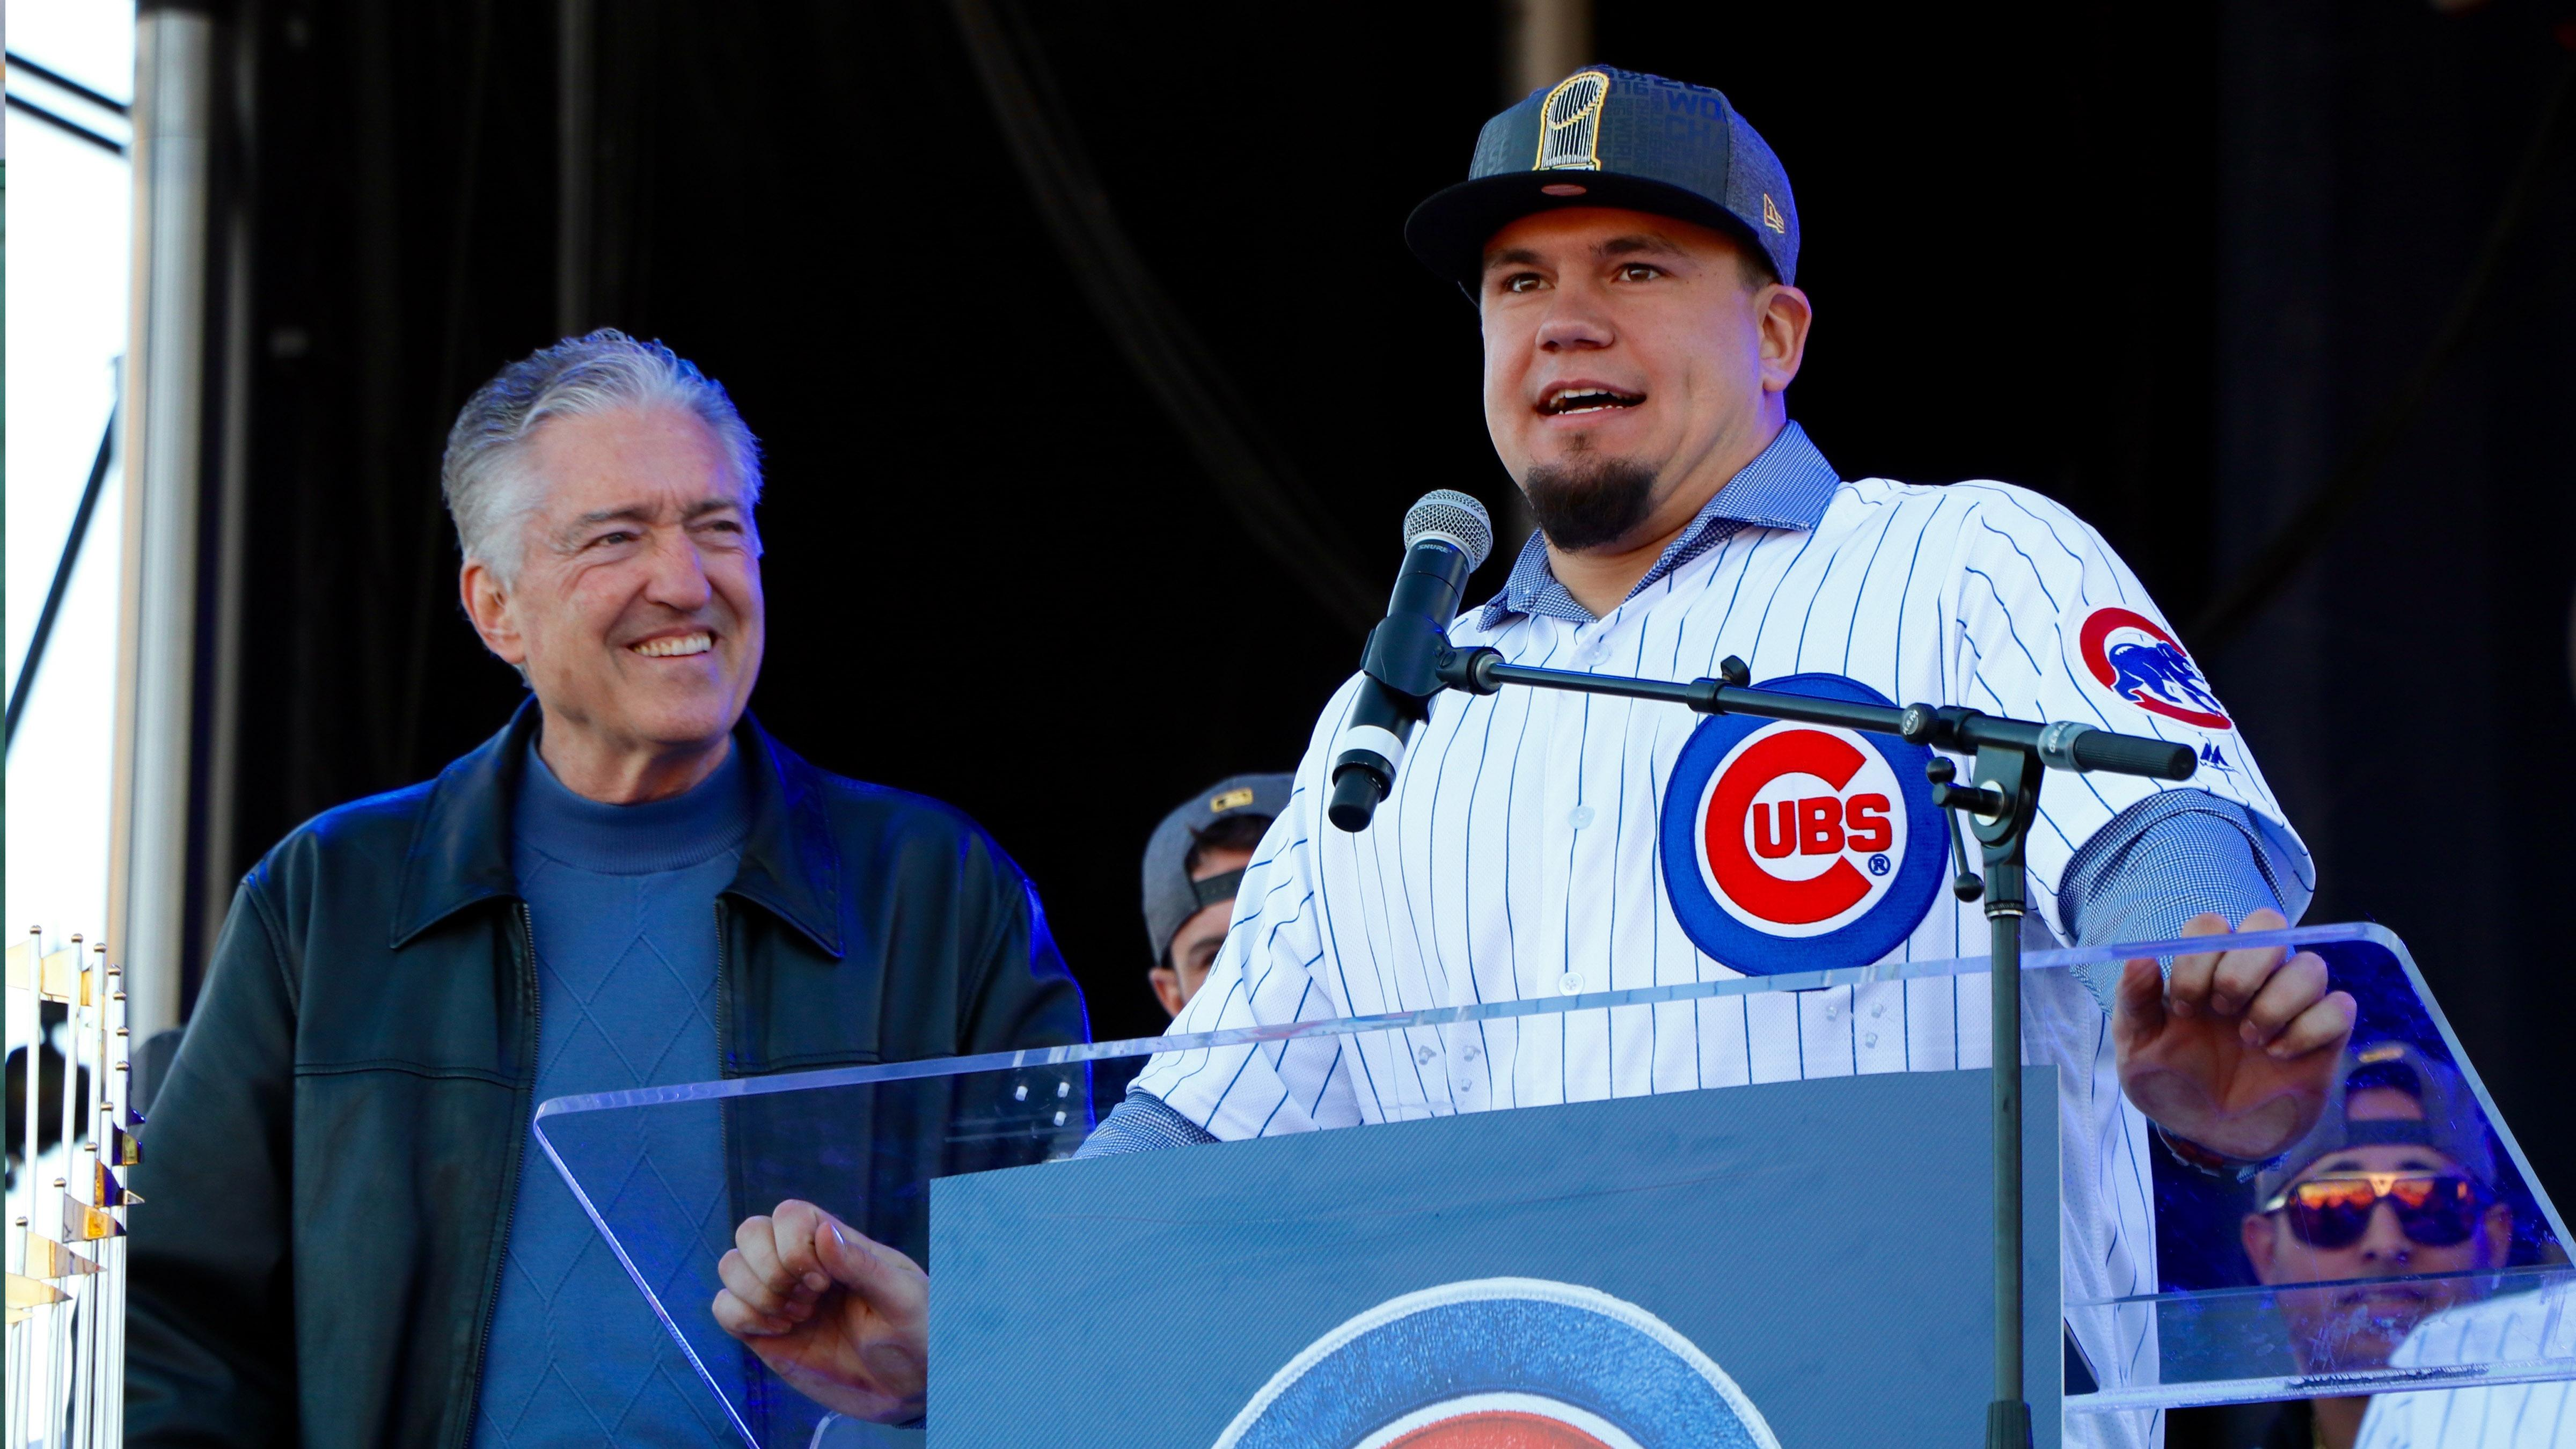 c0c5dce65a2 Cubs player Kyle Schwarber speaks at Friday s rally. To his right is Cubs  sportscaster Pat Hughes